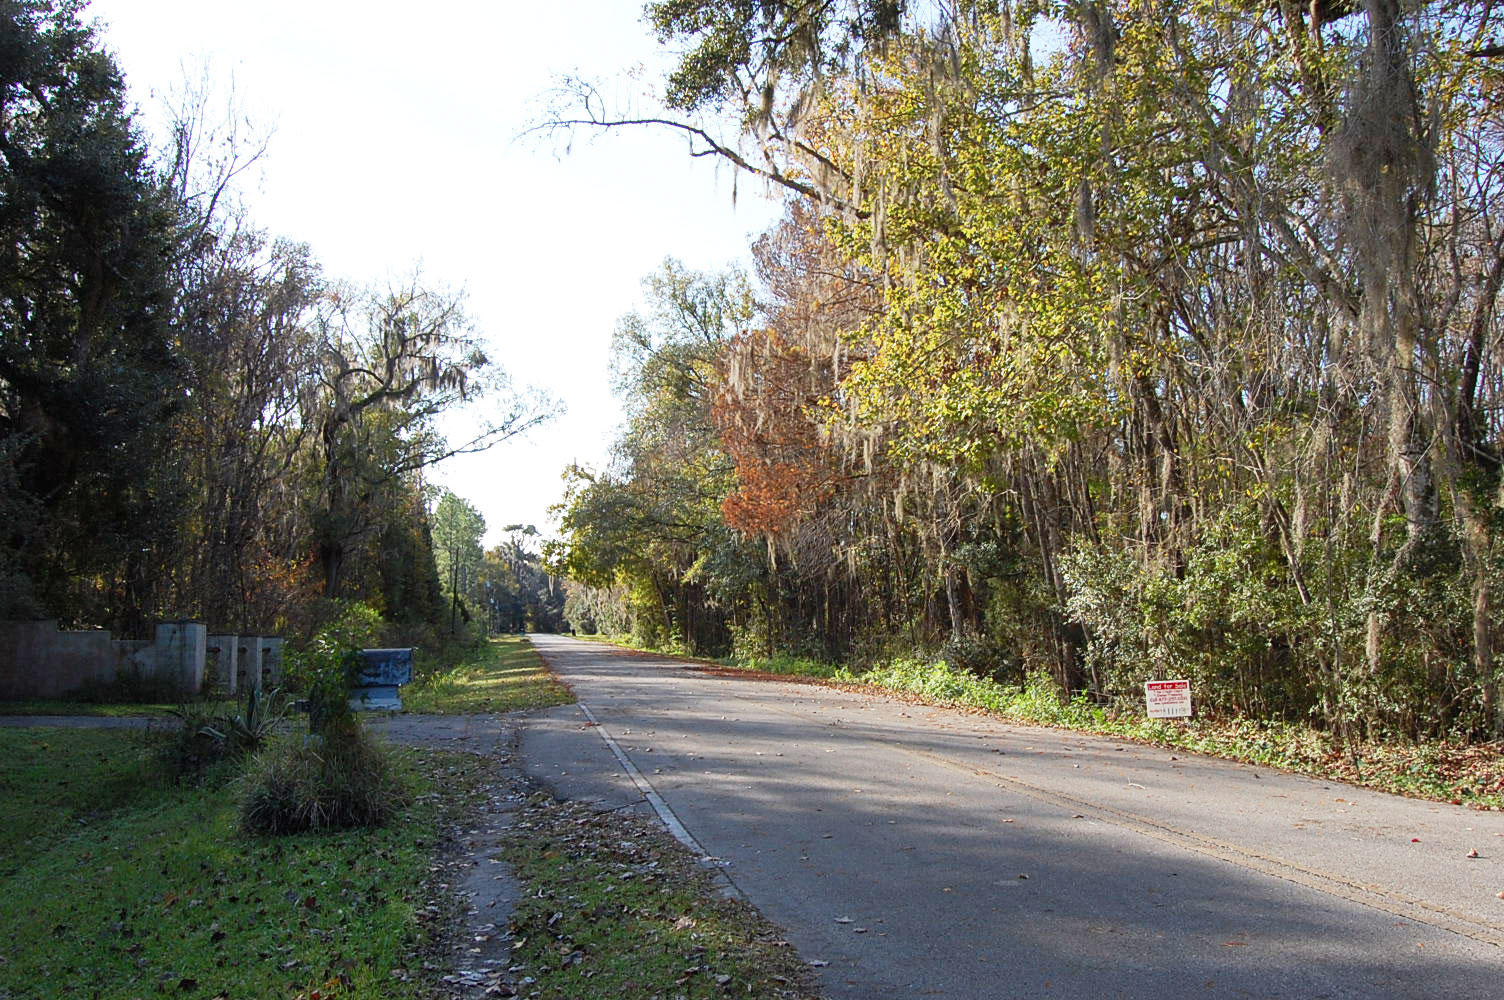 3 Acres in Sunshine State Steps From the Riverbank - Image 6